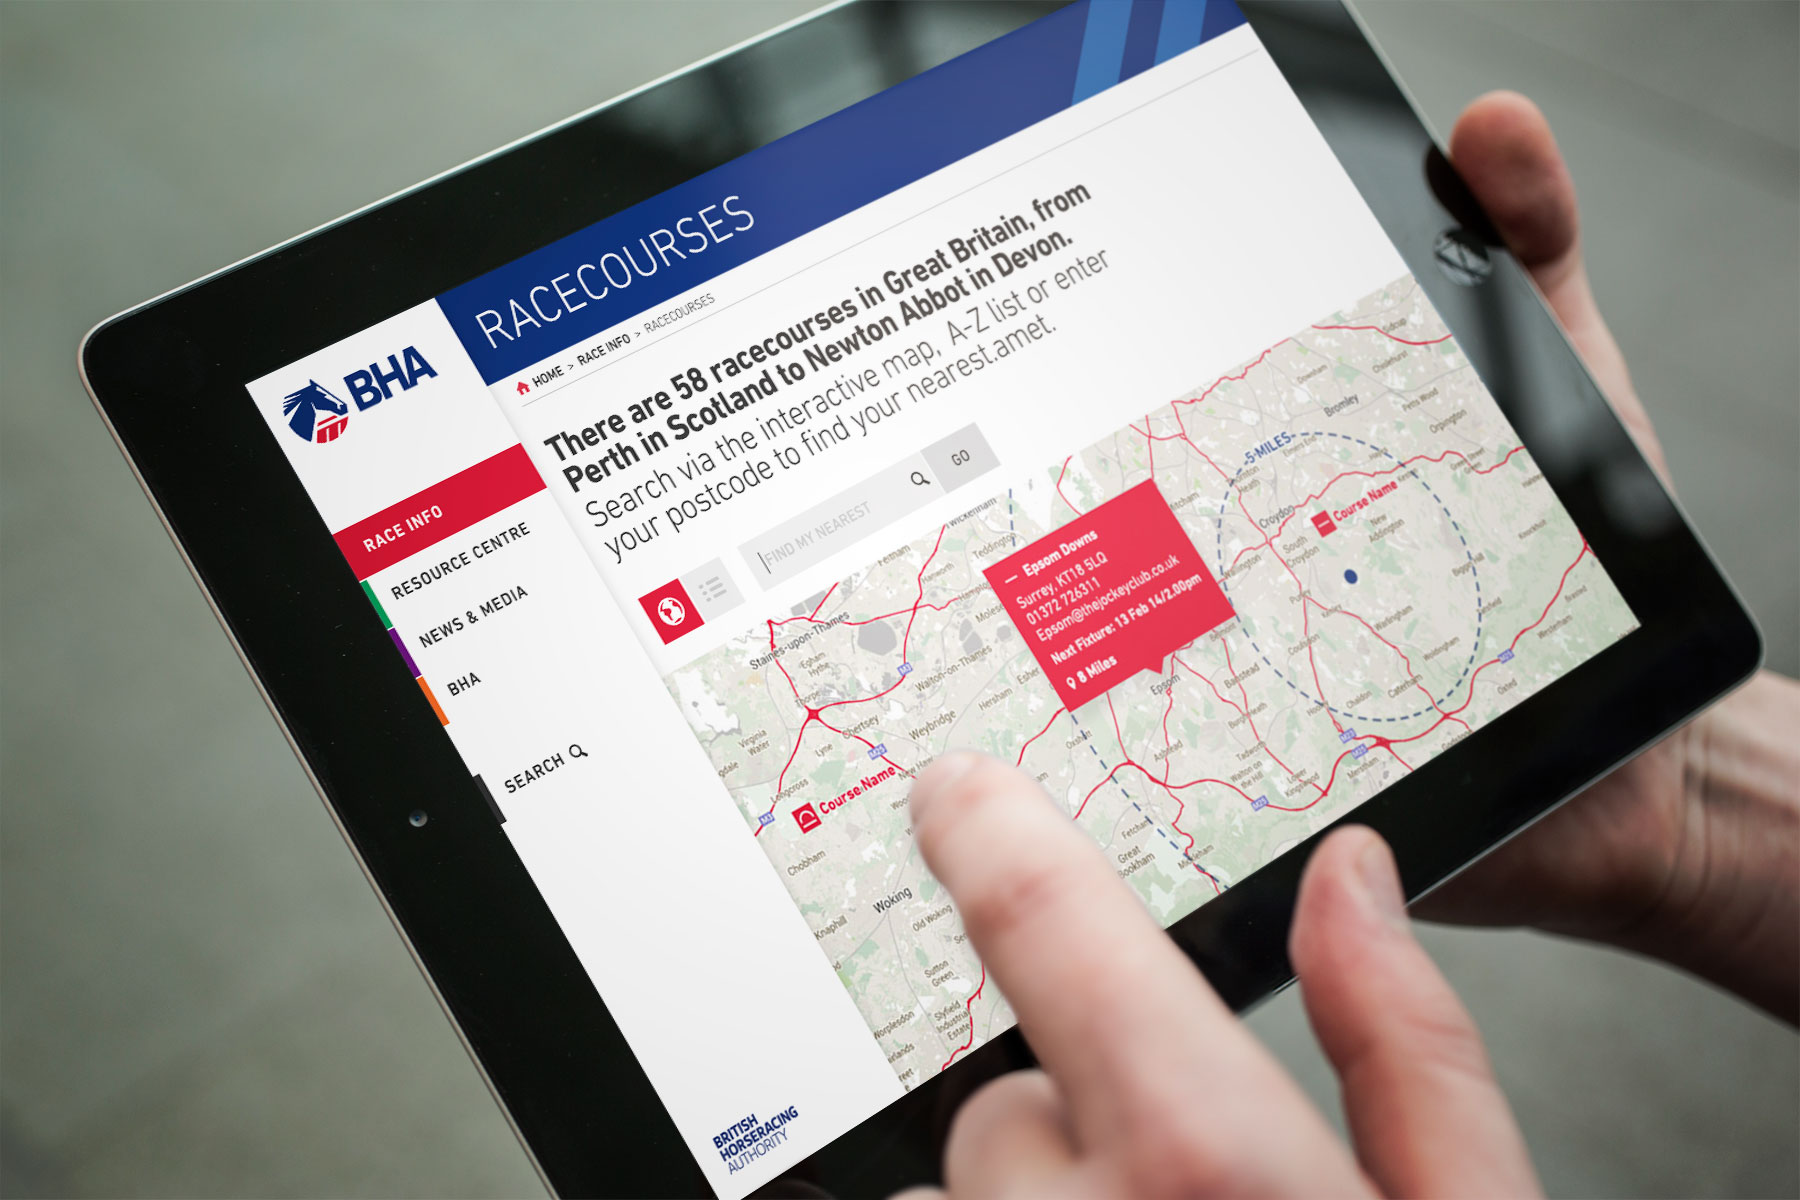 As a portal for information from disqualified jockeys to racecourse locations, the site needs to be easy to use in all situations. Here, we can see how easy it is to locate your nearest racecourse.